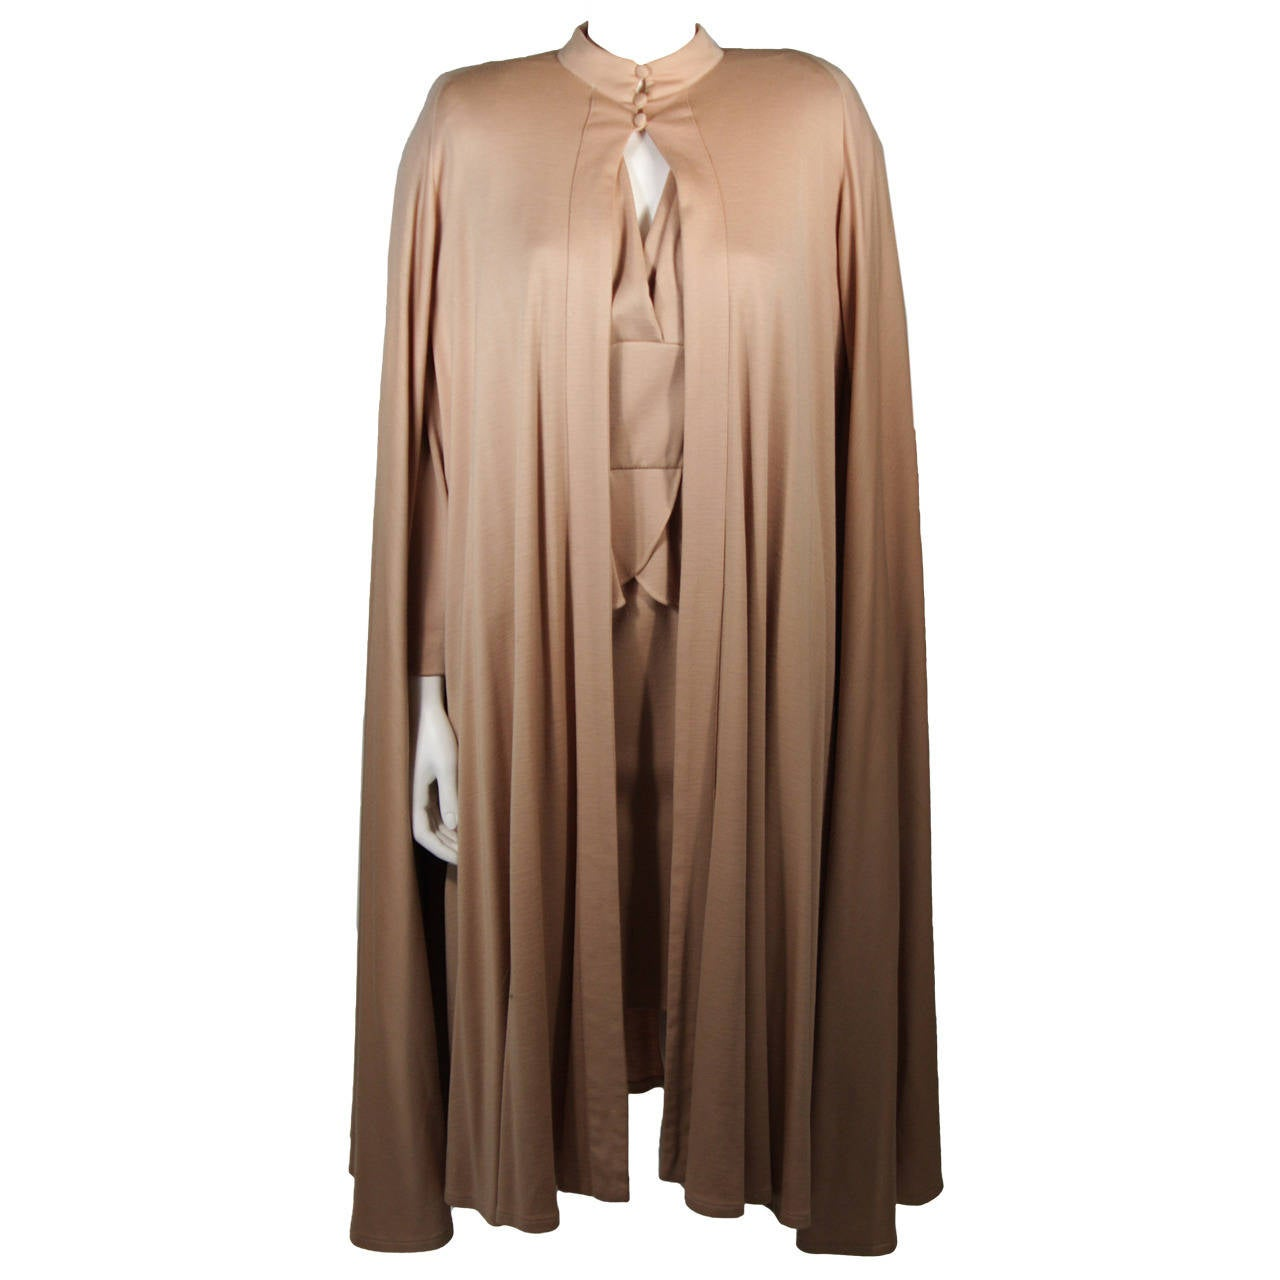 Nolan Miller Attributed Camel Wool Cape and Cocktail Dress Size Small